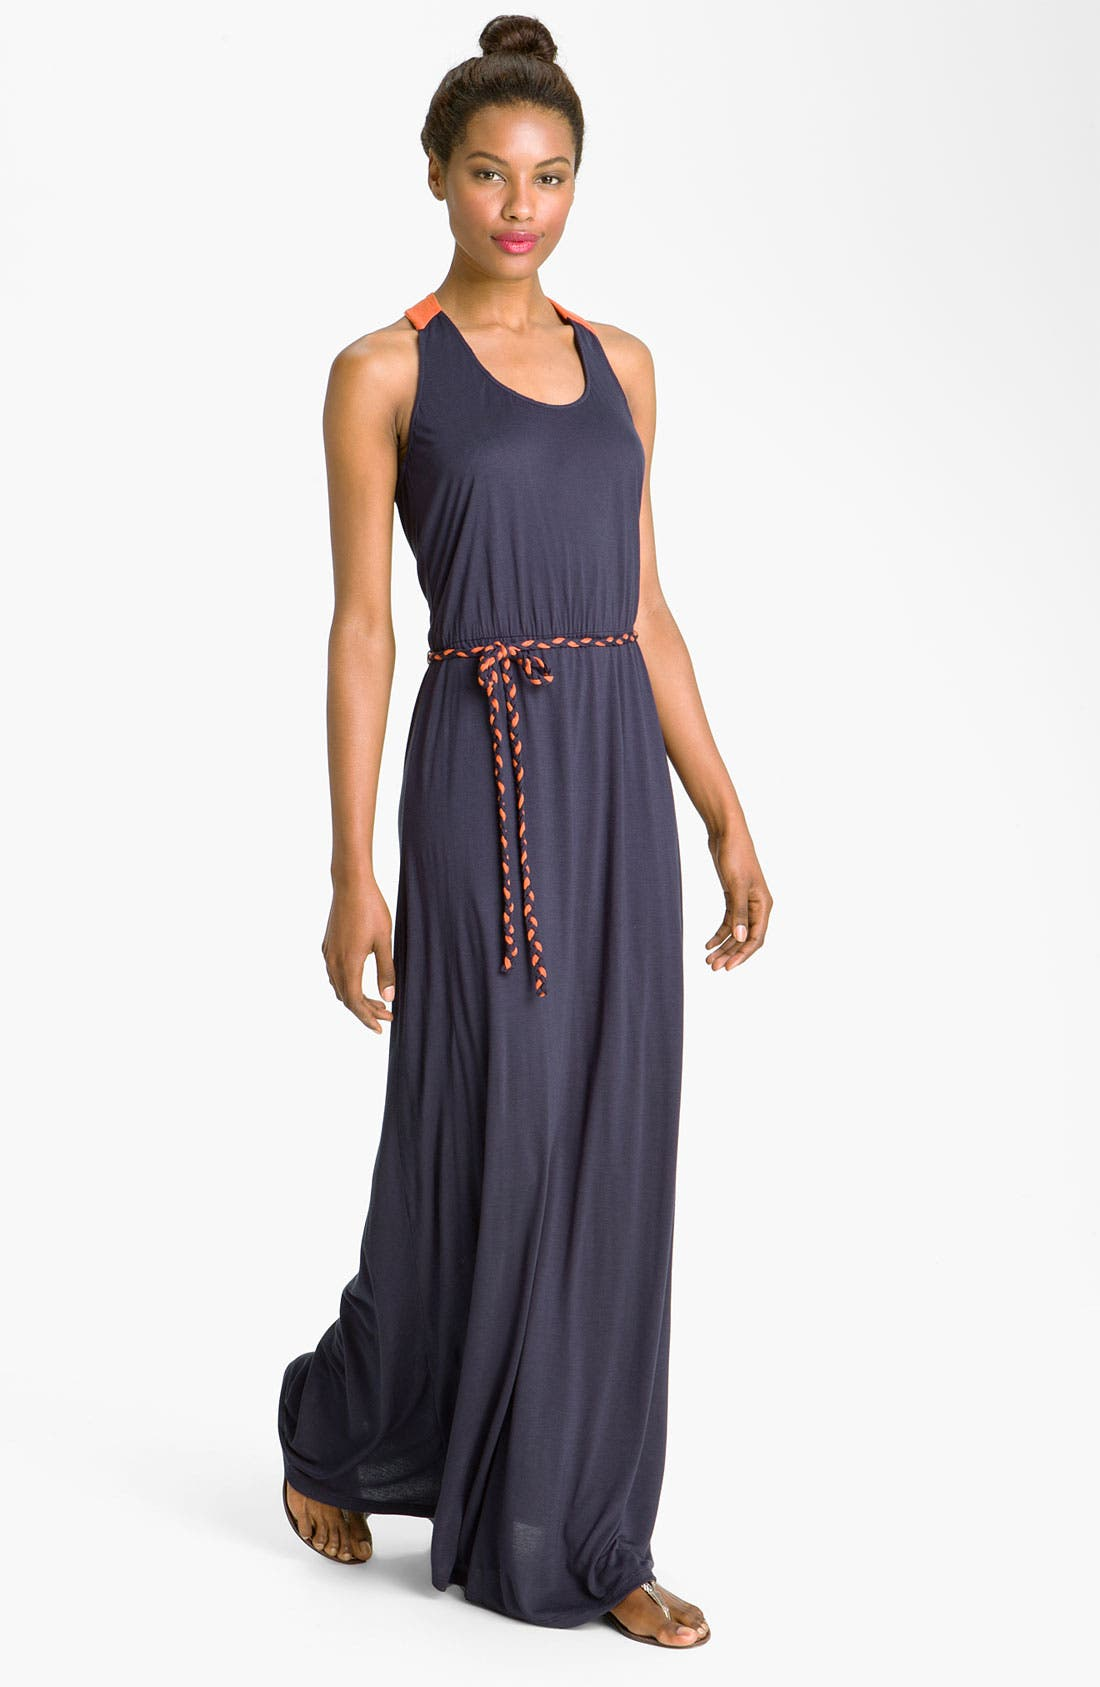 Main Image - Max & Mia Contrast Trim Maxi Dress